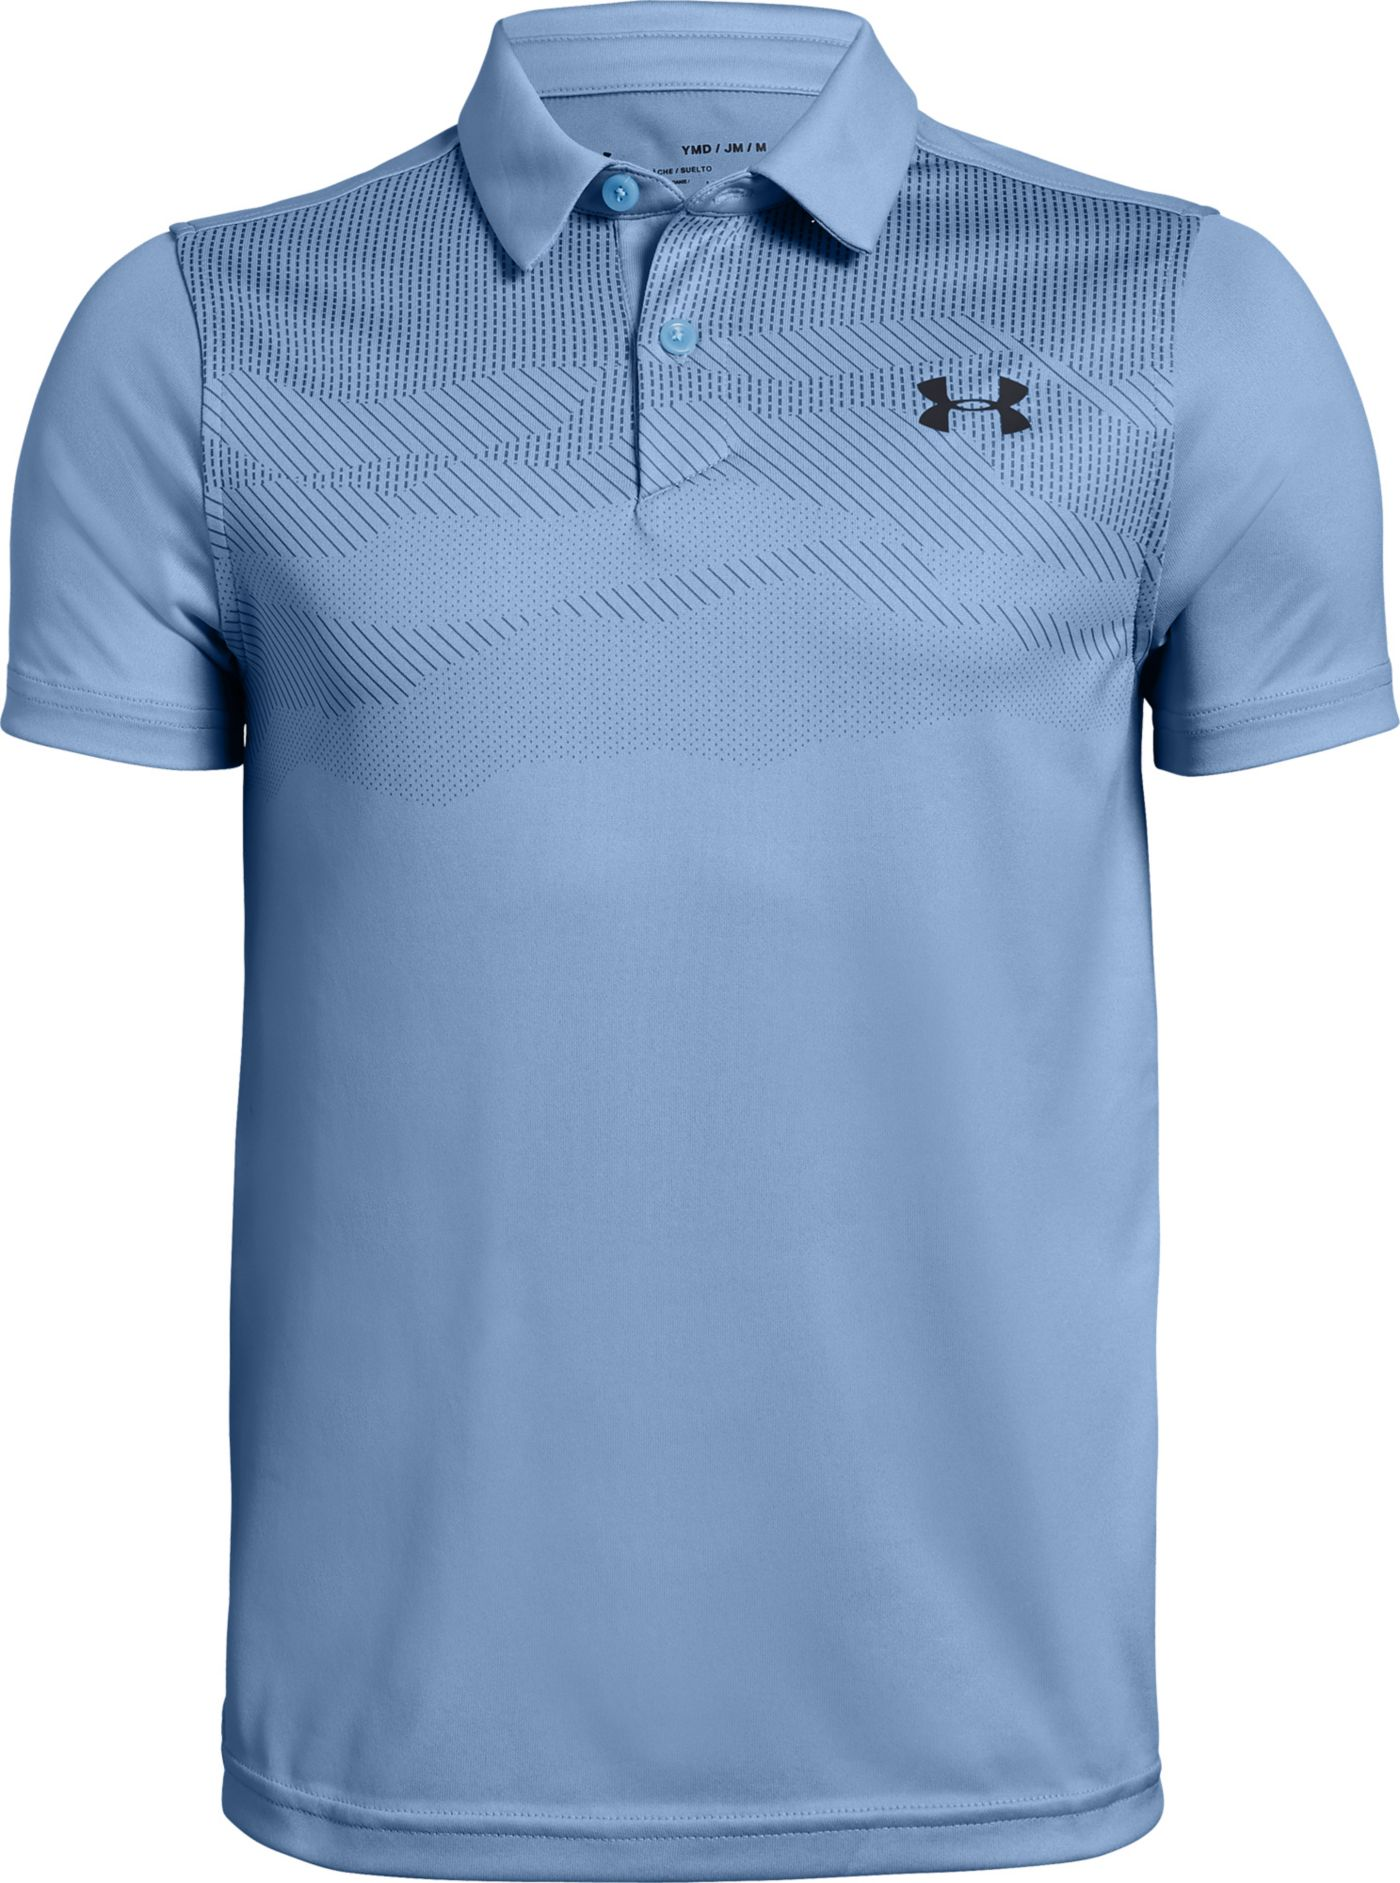 Under Armour Boys' Airlift Golf Polo Shirt